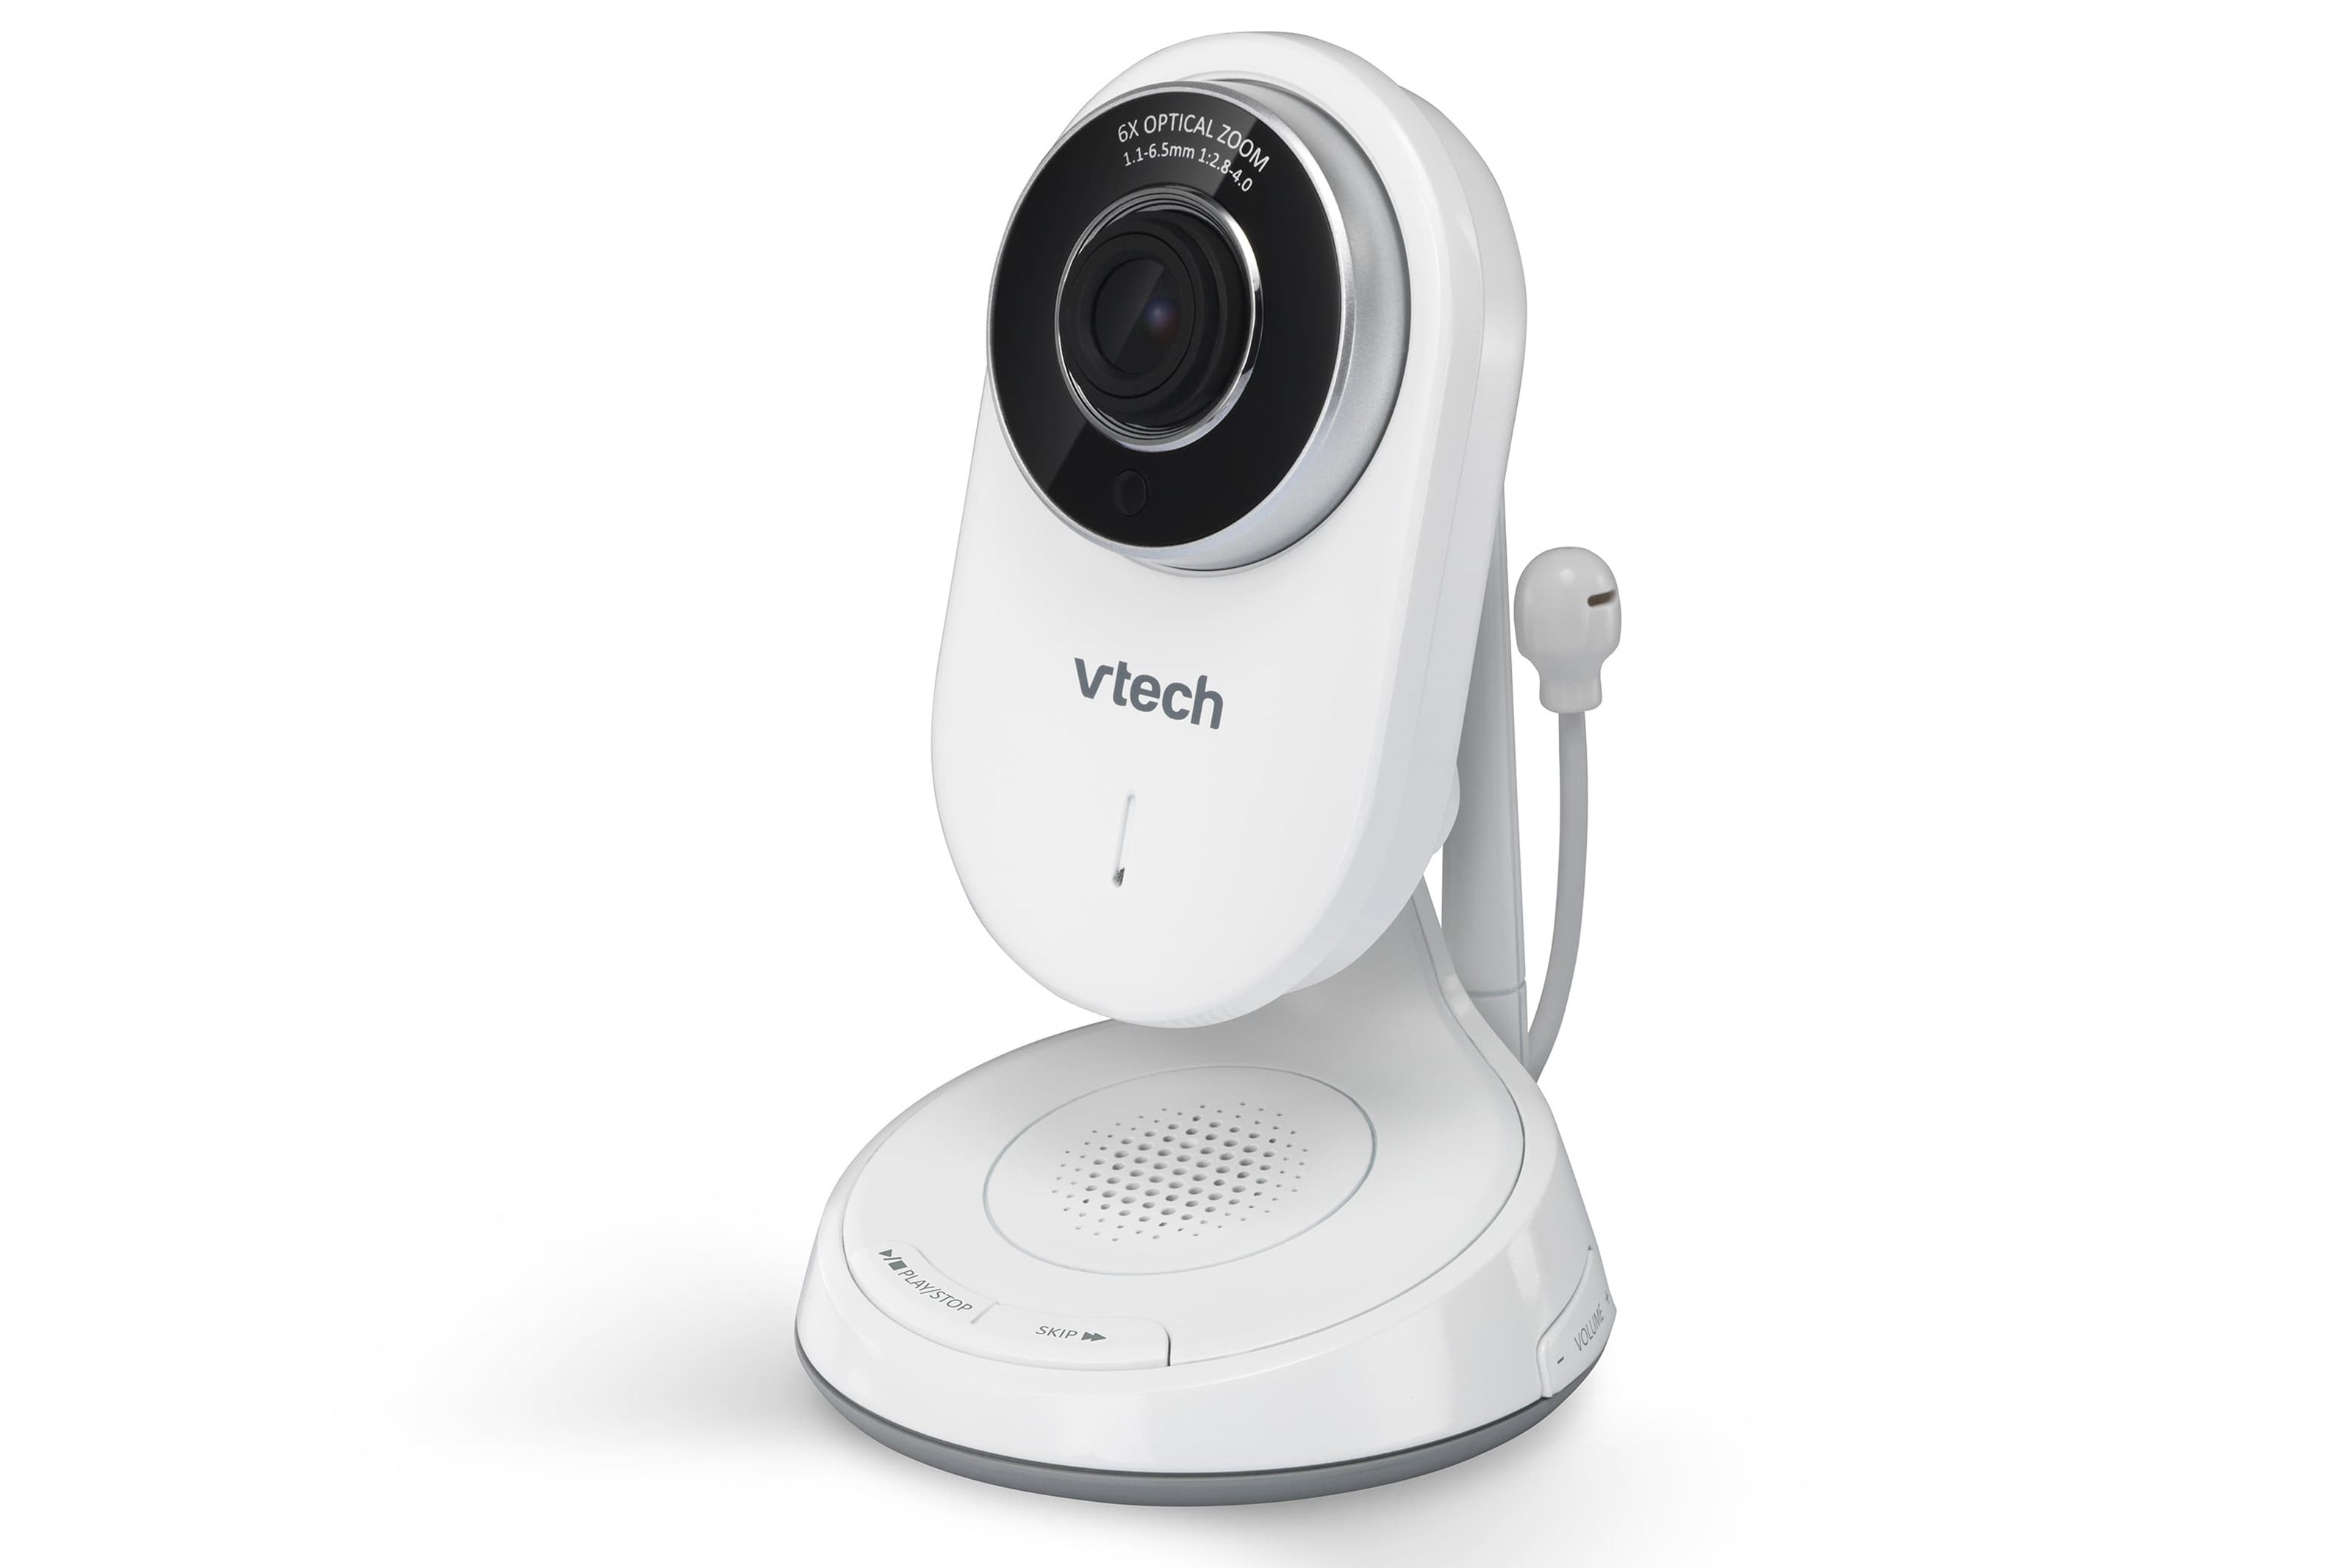 Vtech vm5271 expandable digital video baby monitor review for Camera camera